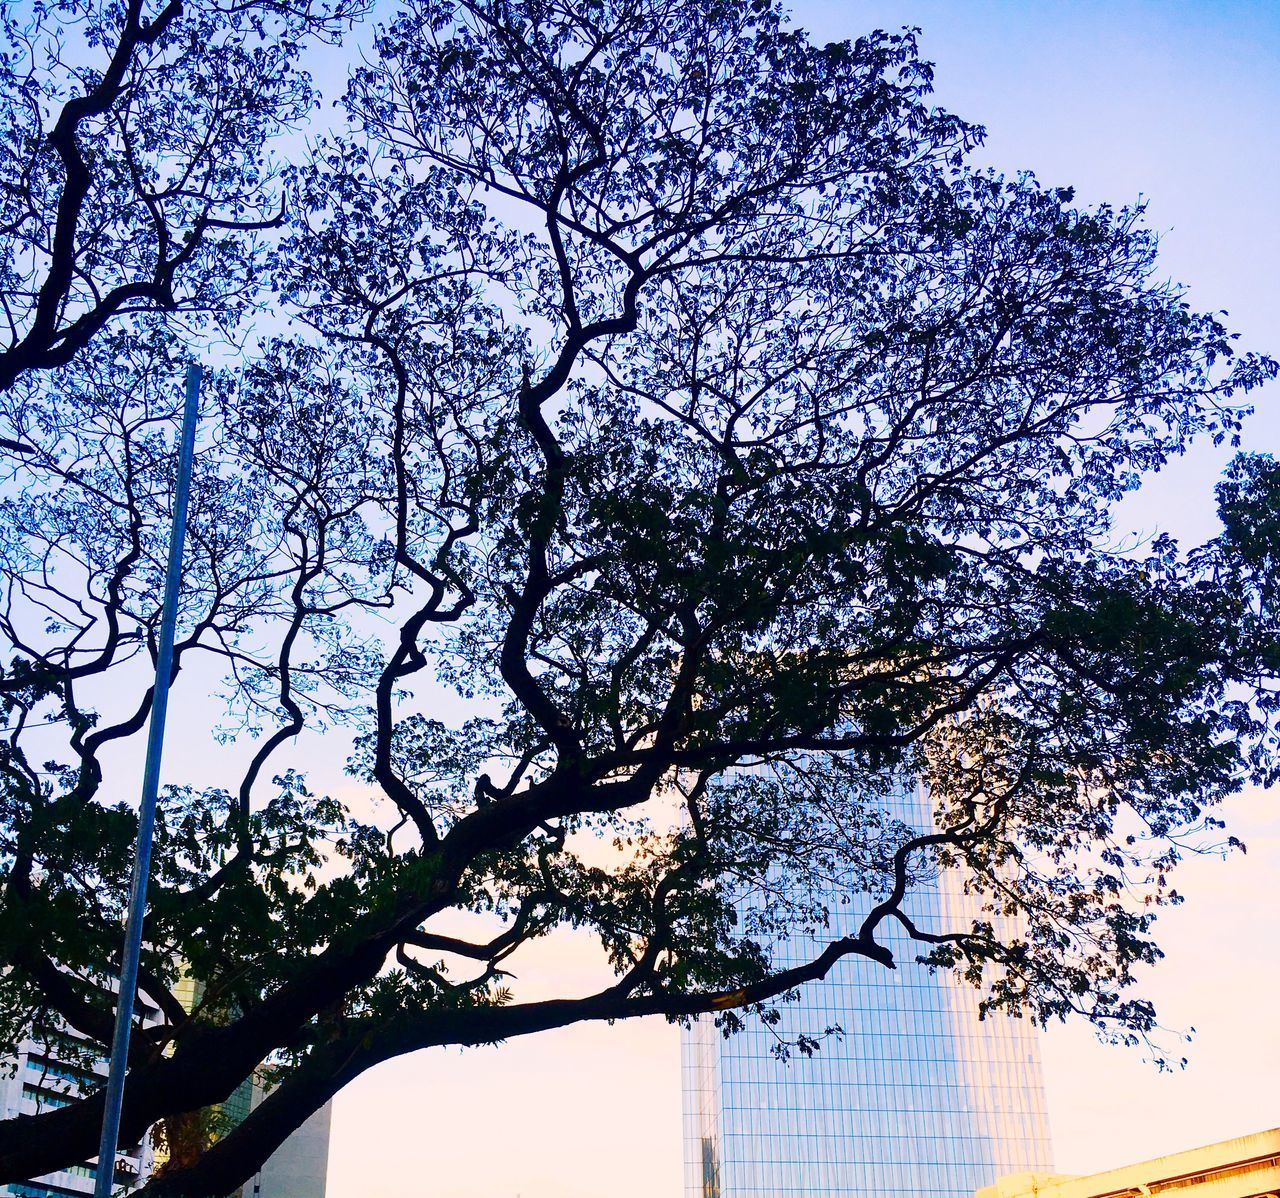 tree, low angle view, growth, branch, no people, day, nature, outdoors, sky, clear sky, beauty in nature